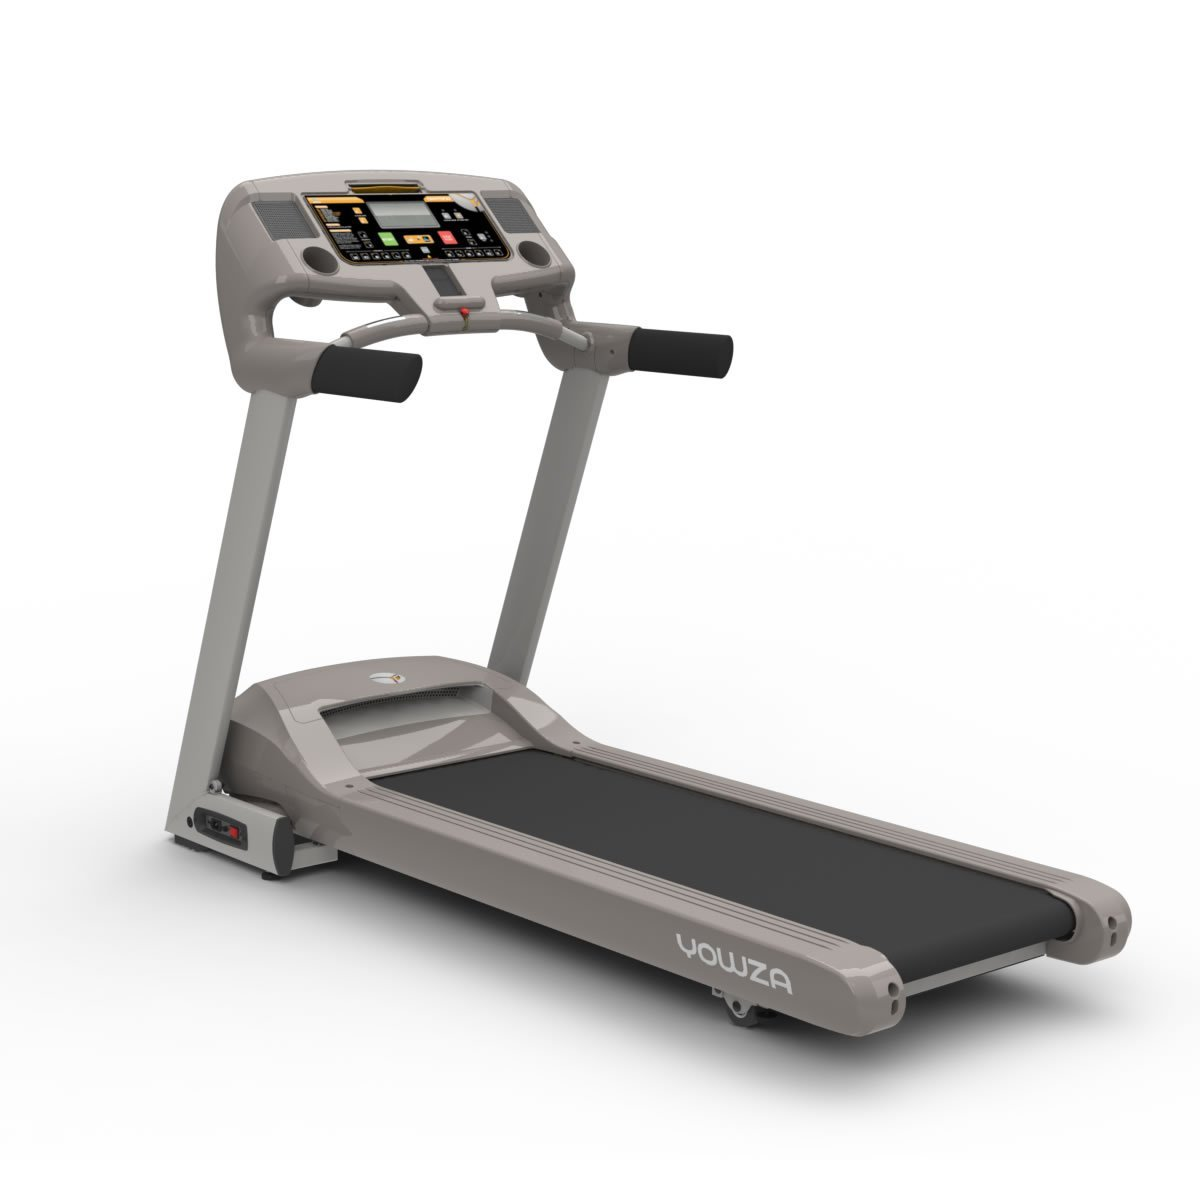 yowza daytona treadmill review